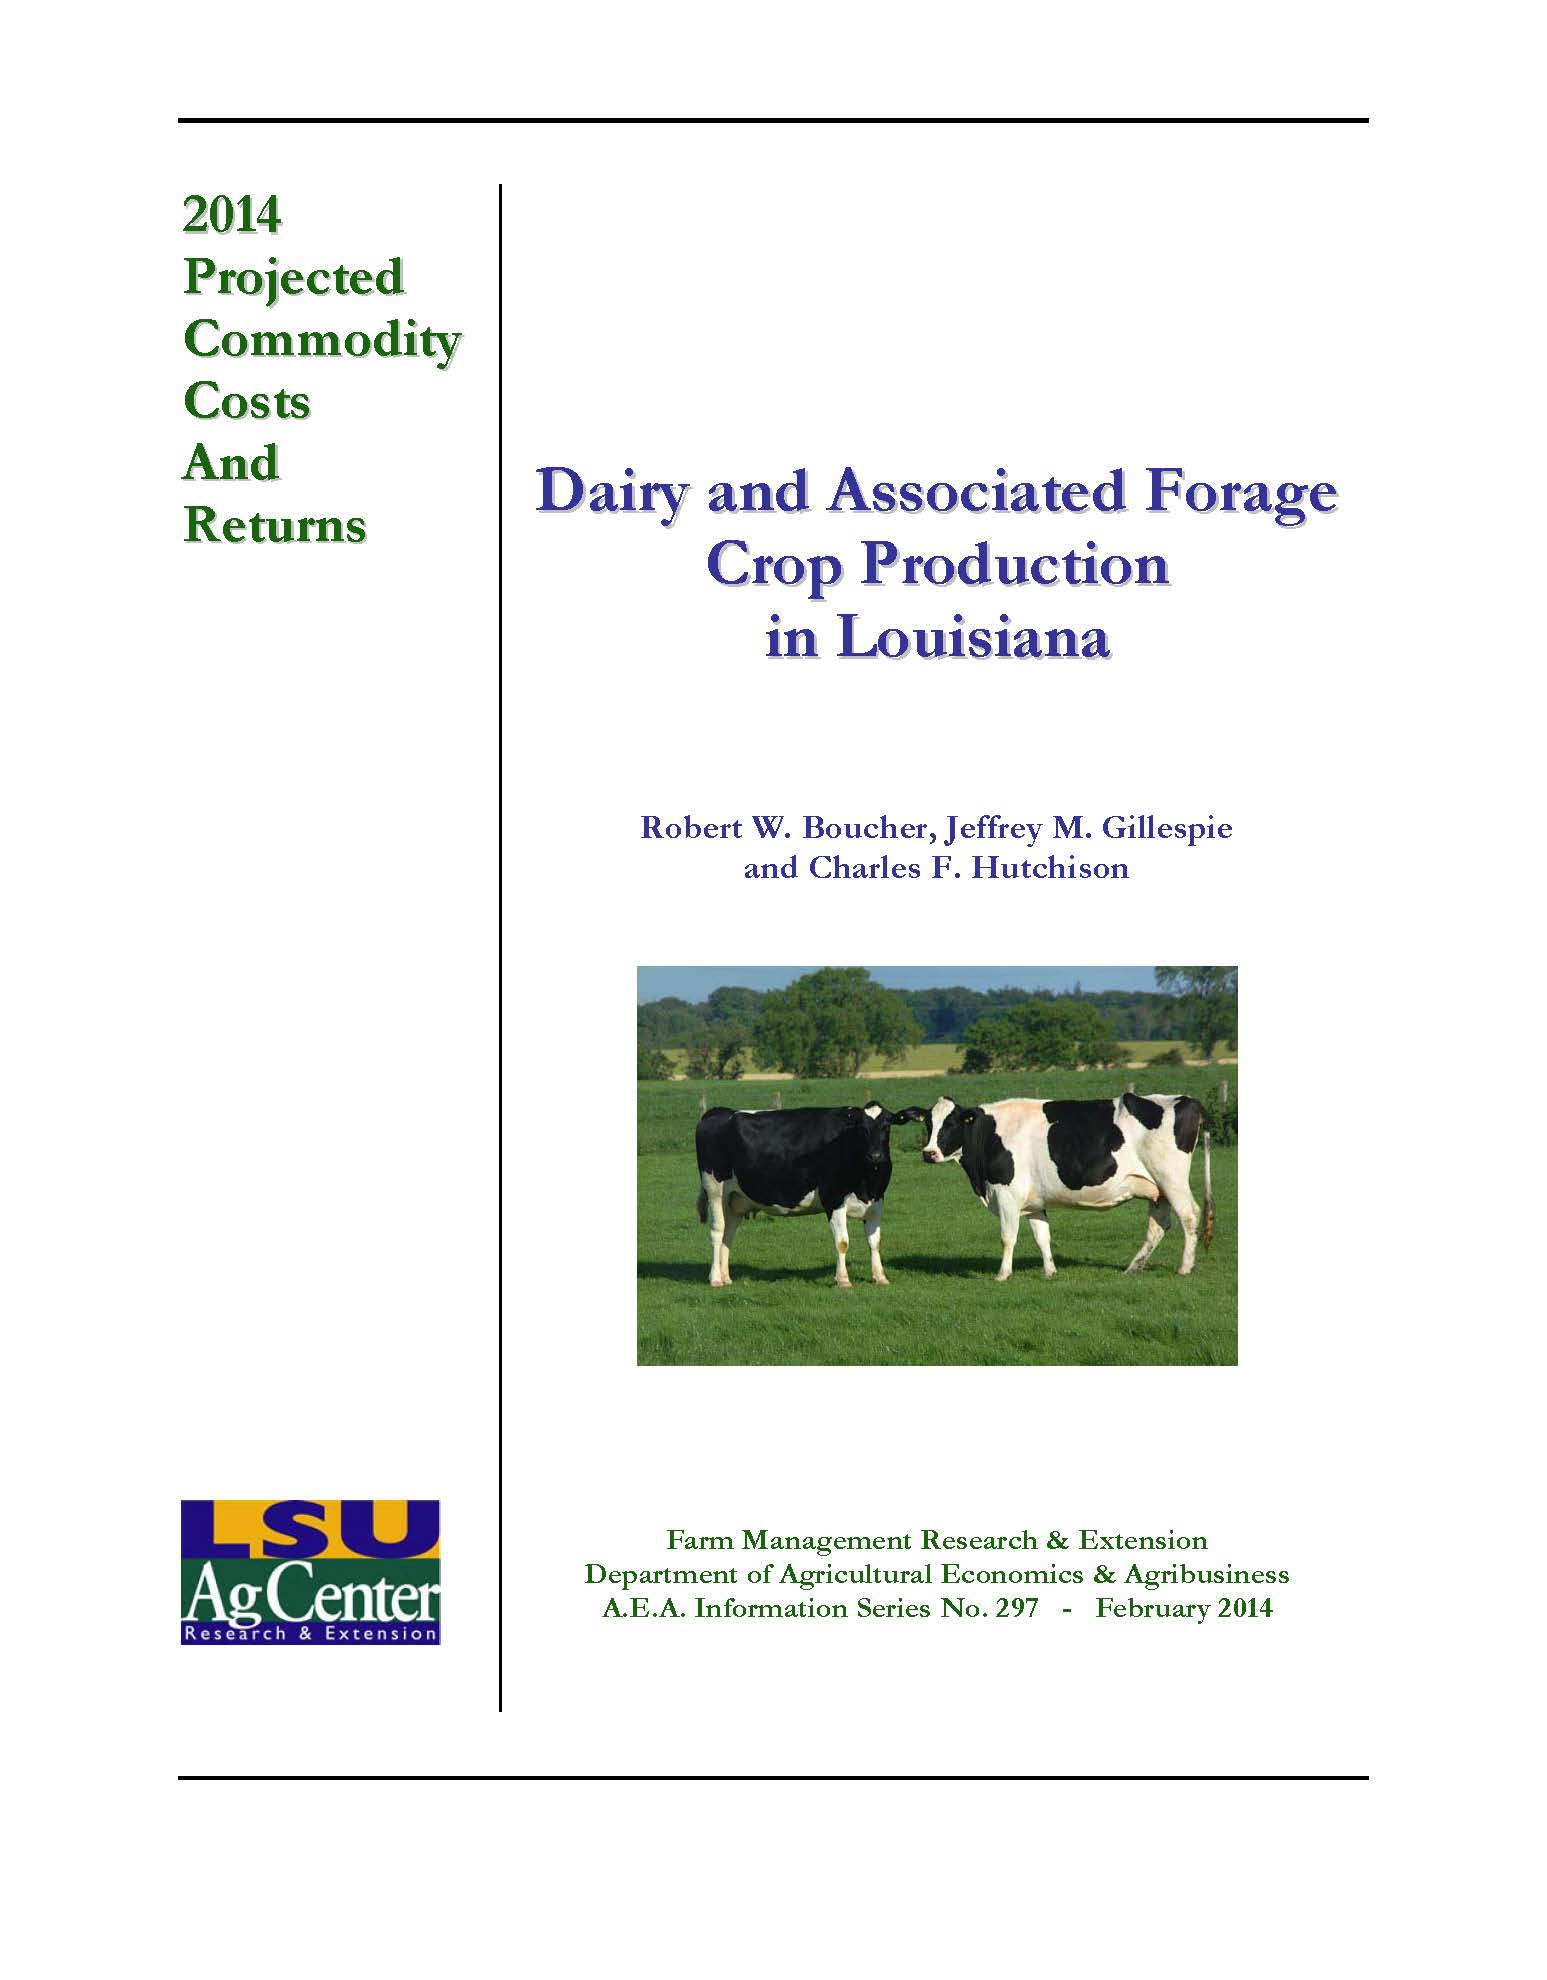 Projected Costs and Returns for Dairy and Associated Forage Crop Production in Louisiana 2014.